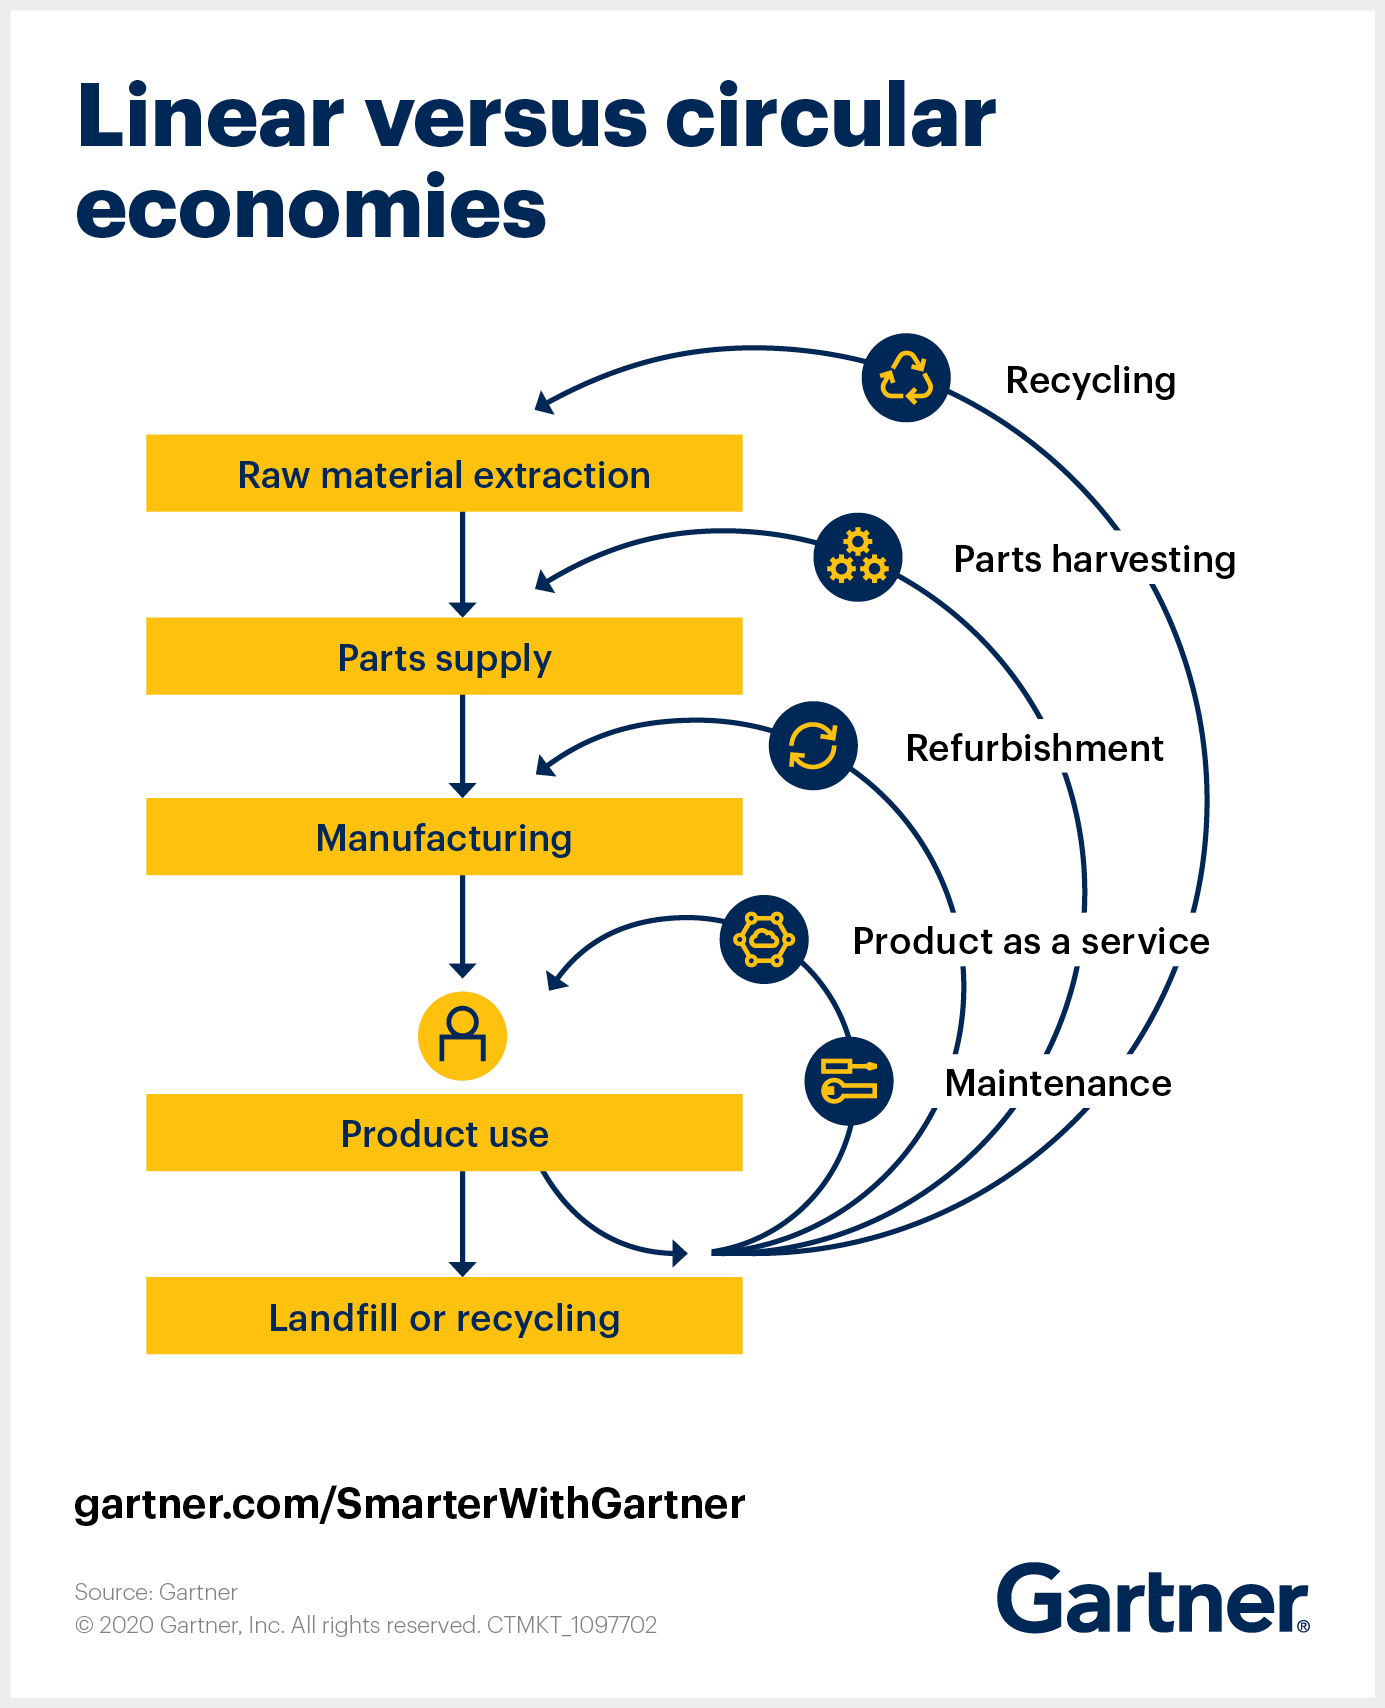 A circular economy moves away from the traditional consumption-based linear economy to achieve raw materials resilience.